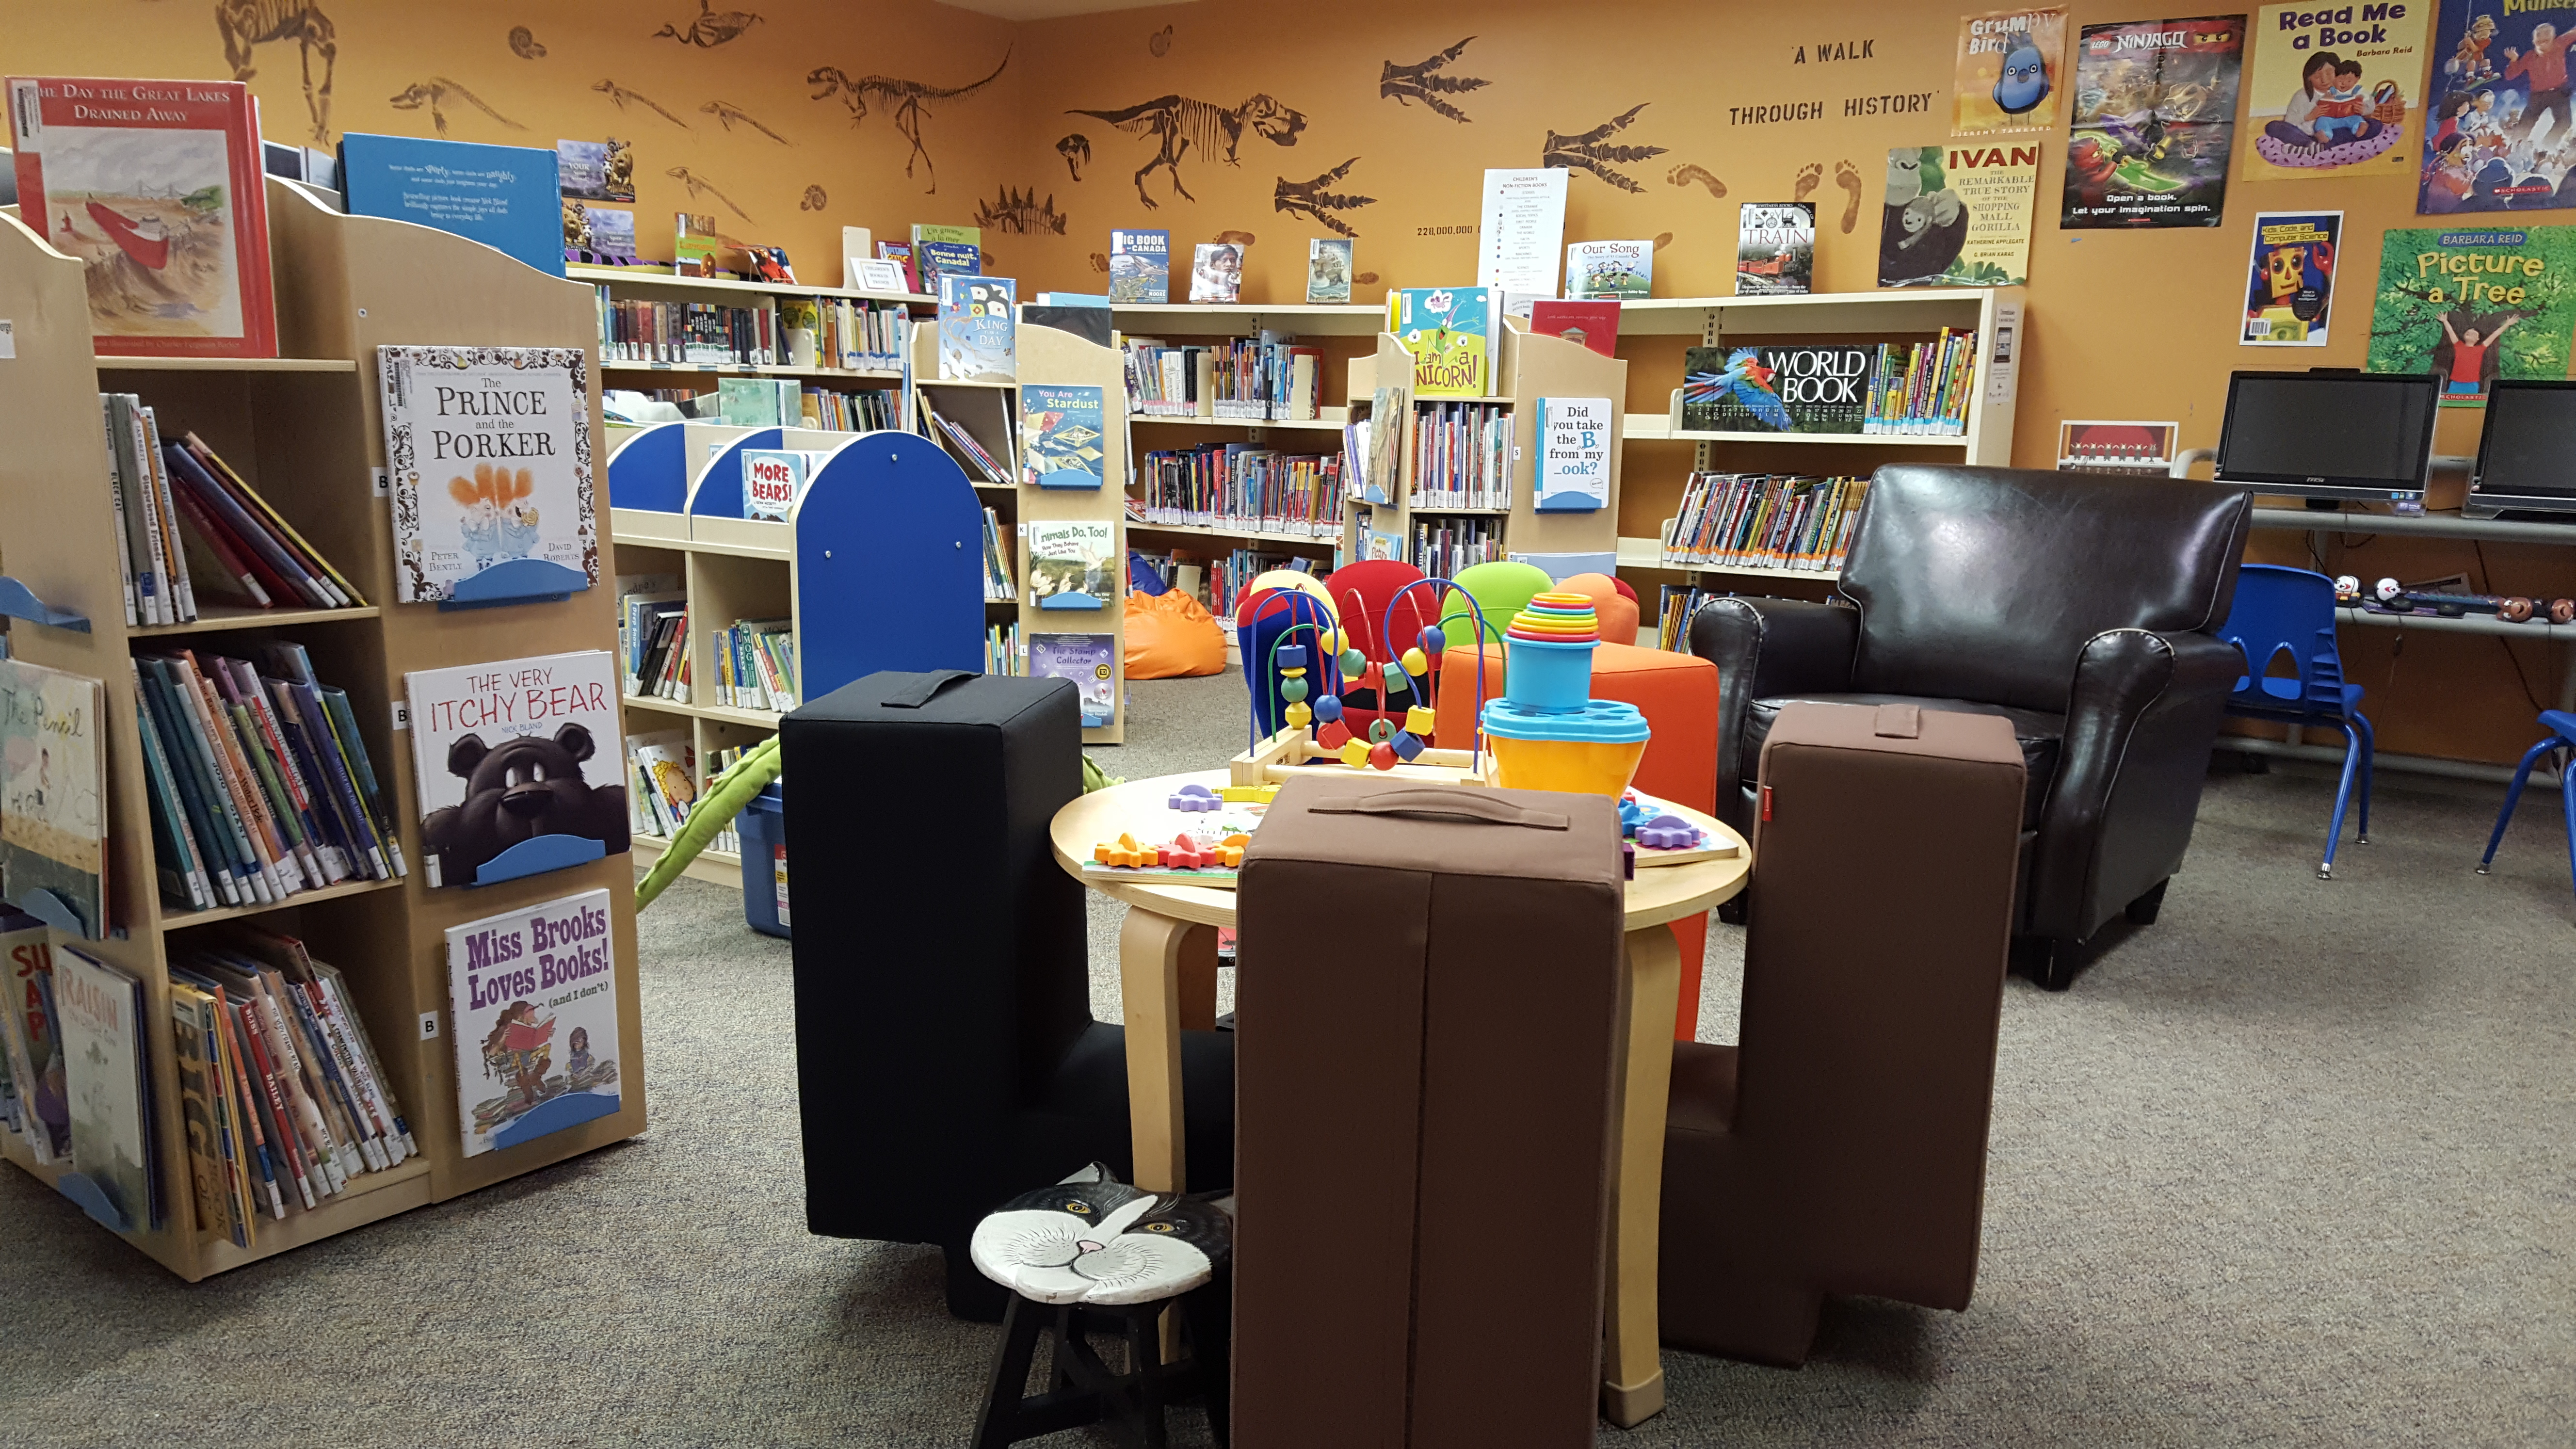 books on shelves, chairs and seating